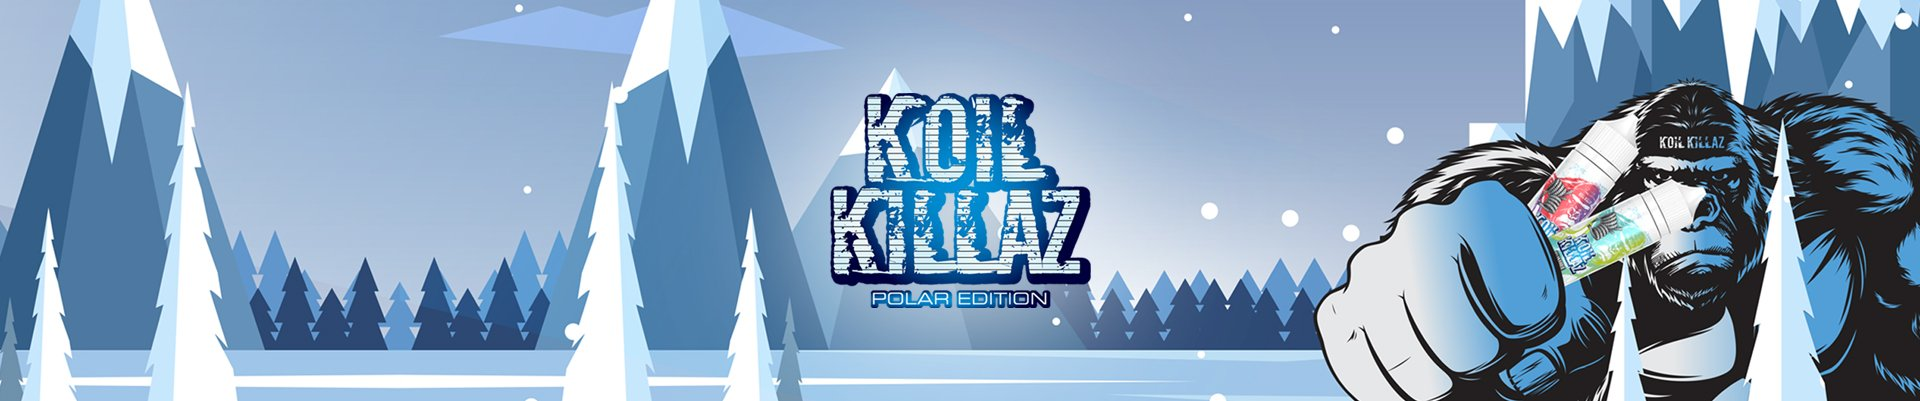 Koil Killaz Polar Edition banner